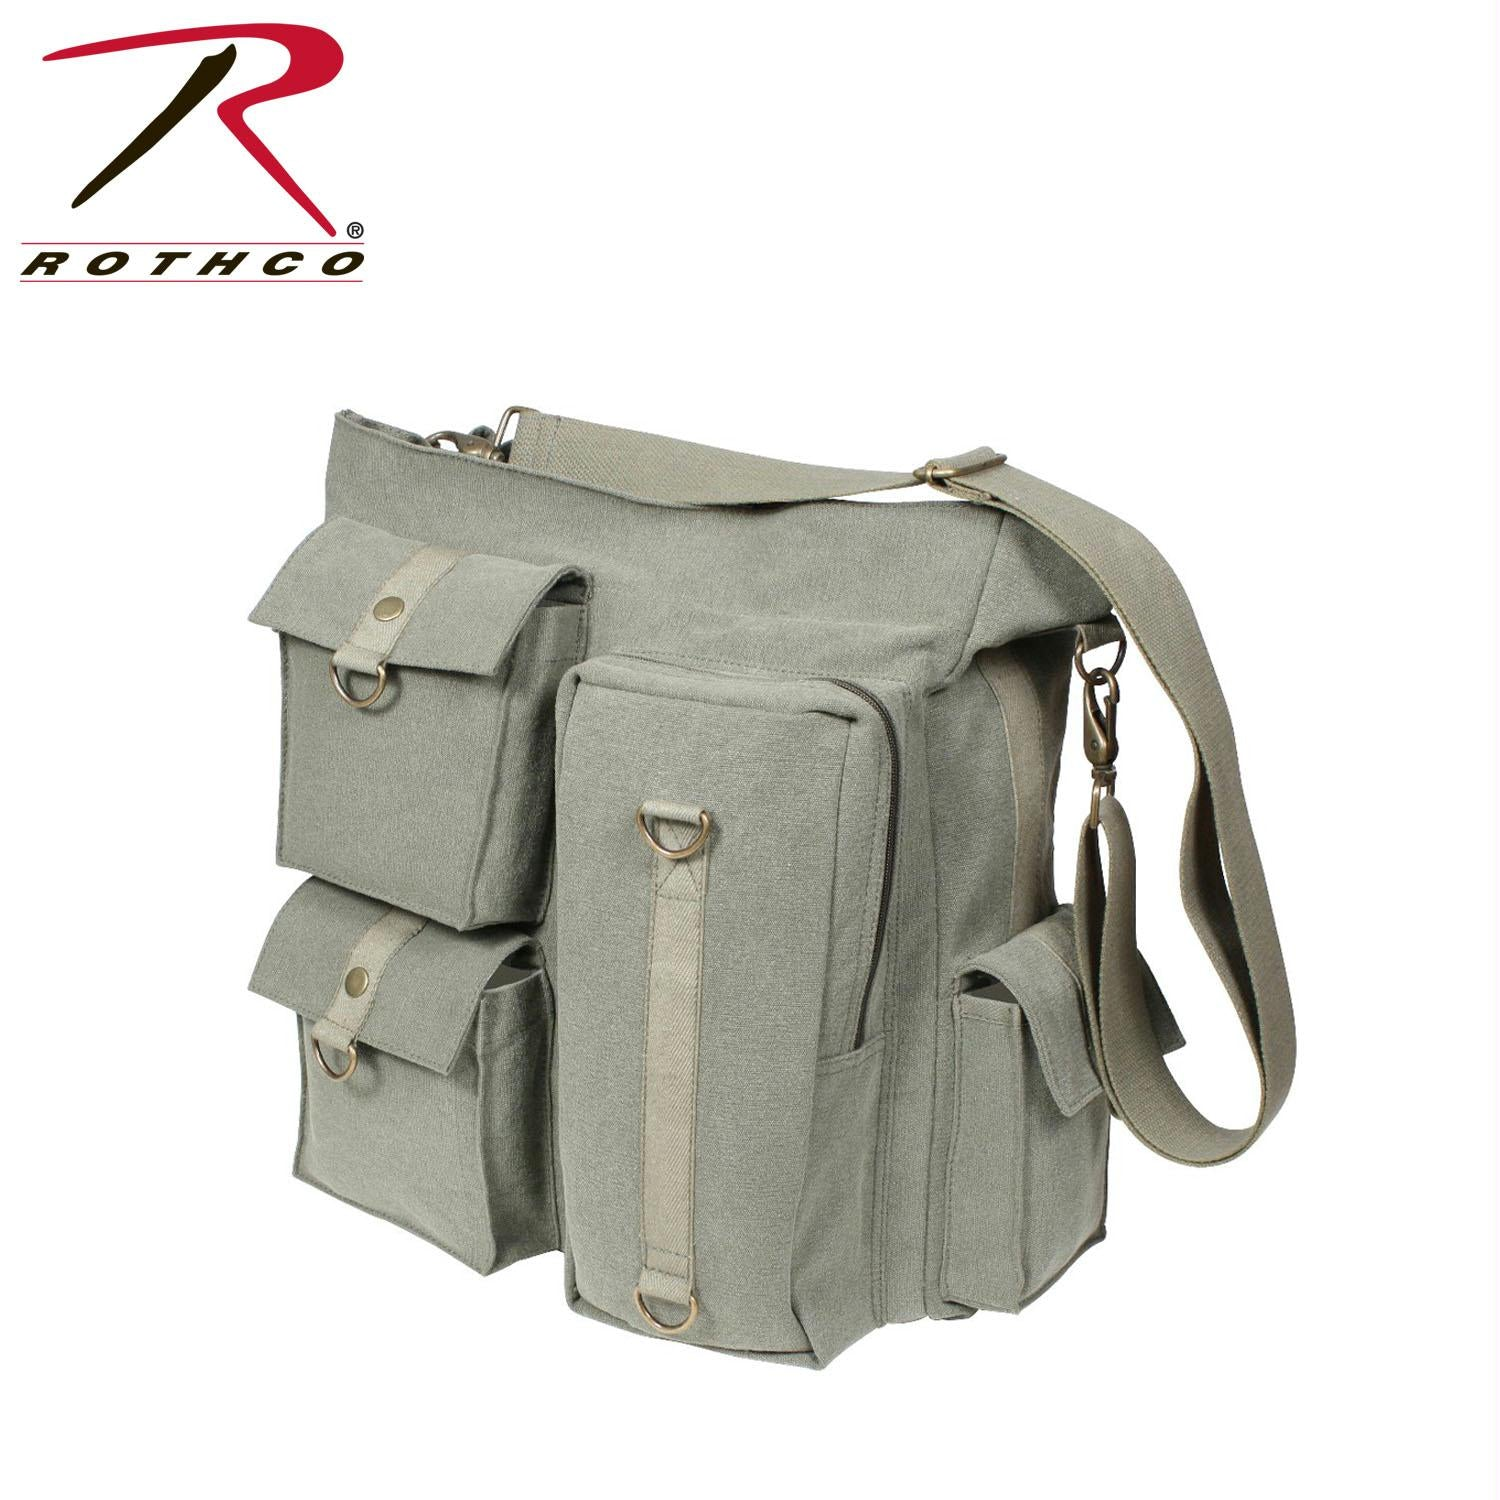 Rothco Vintage Multi Pocket Messenger Bag - Olive Drab